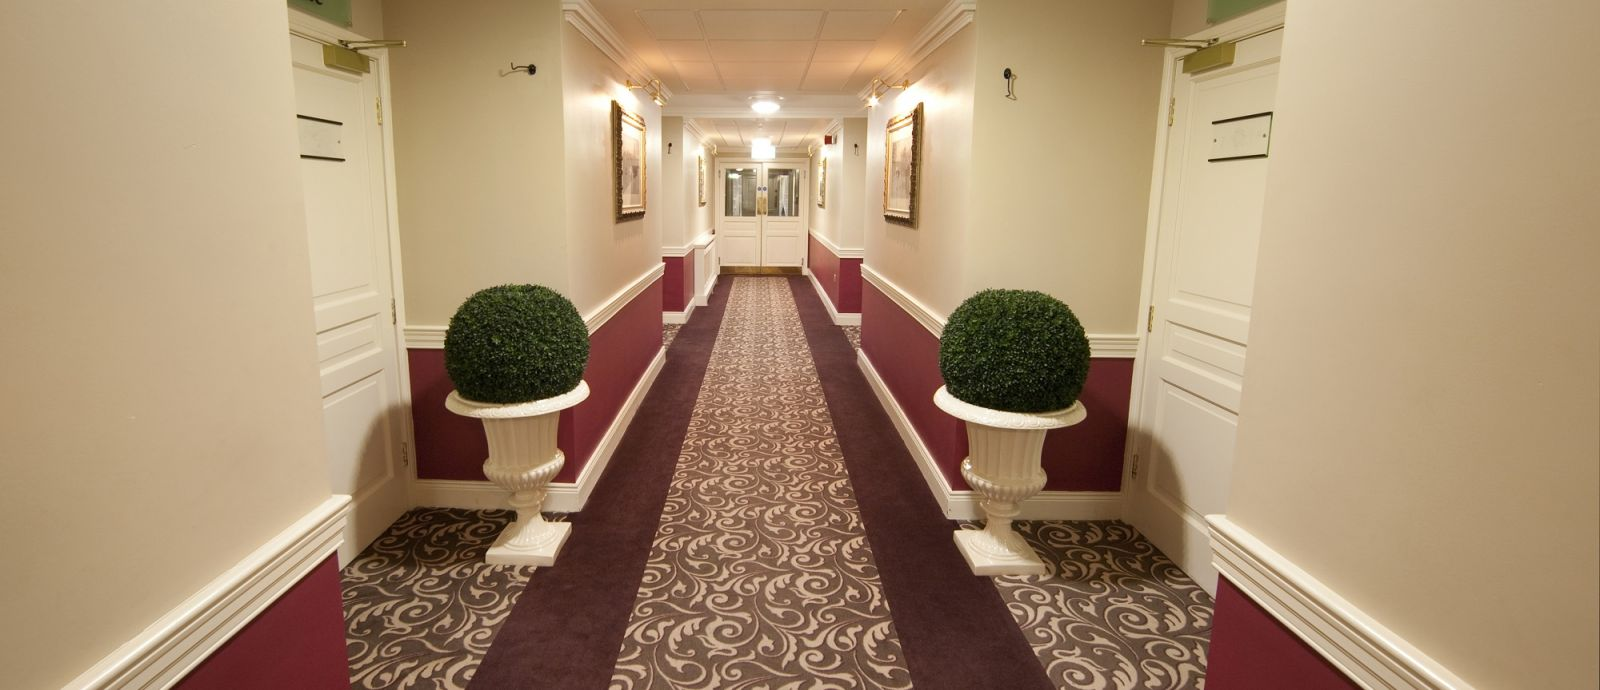 Conference Facilities in Kildare